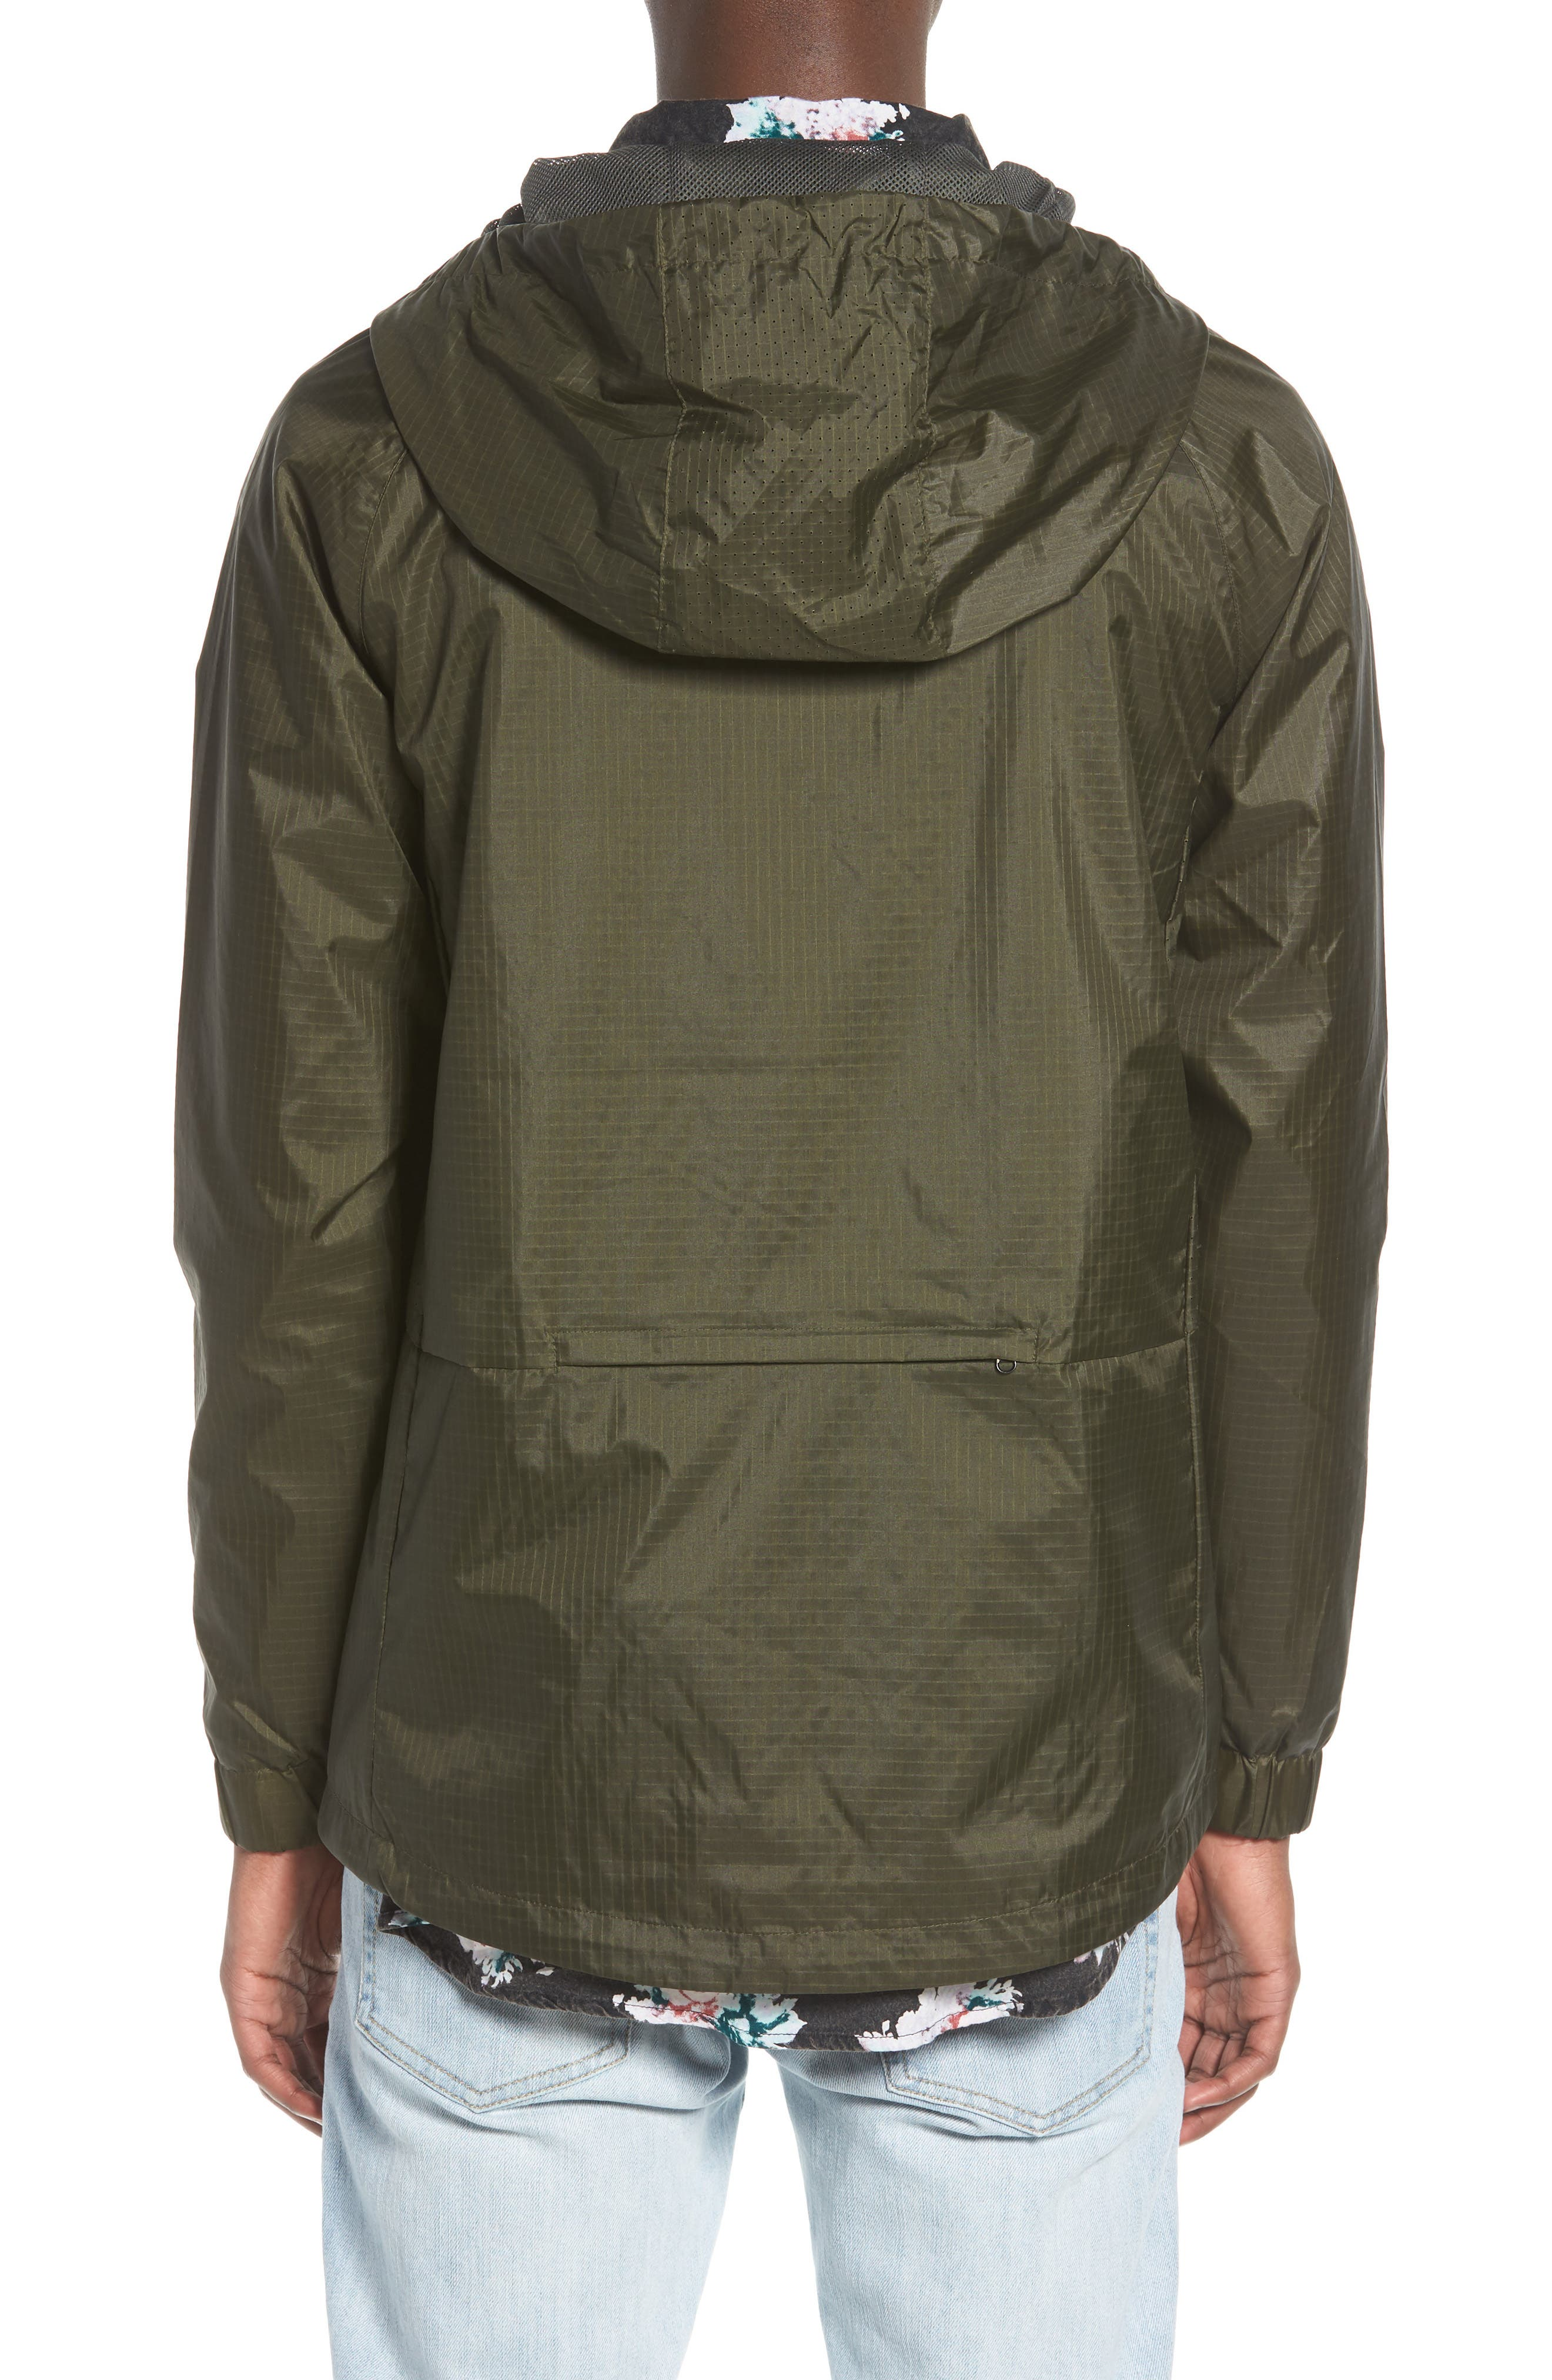 NCT Bezel Packable Anorak,                             Alternate thumbnail 2, color,                             Olive